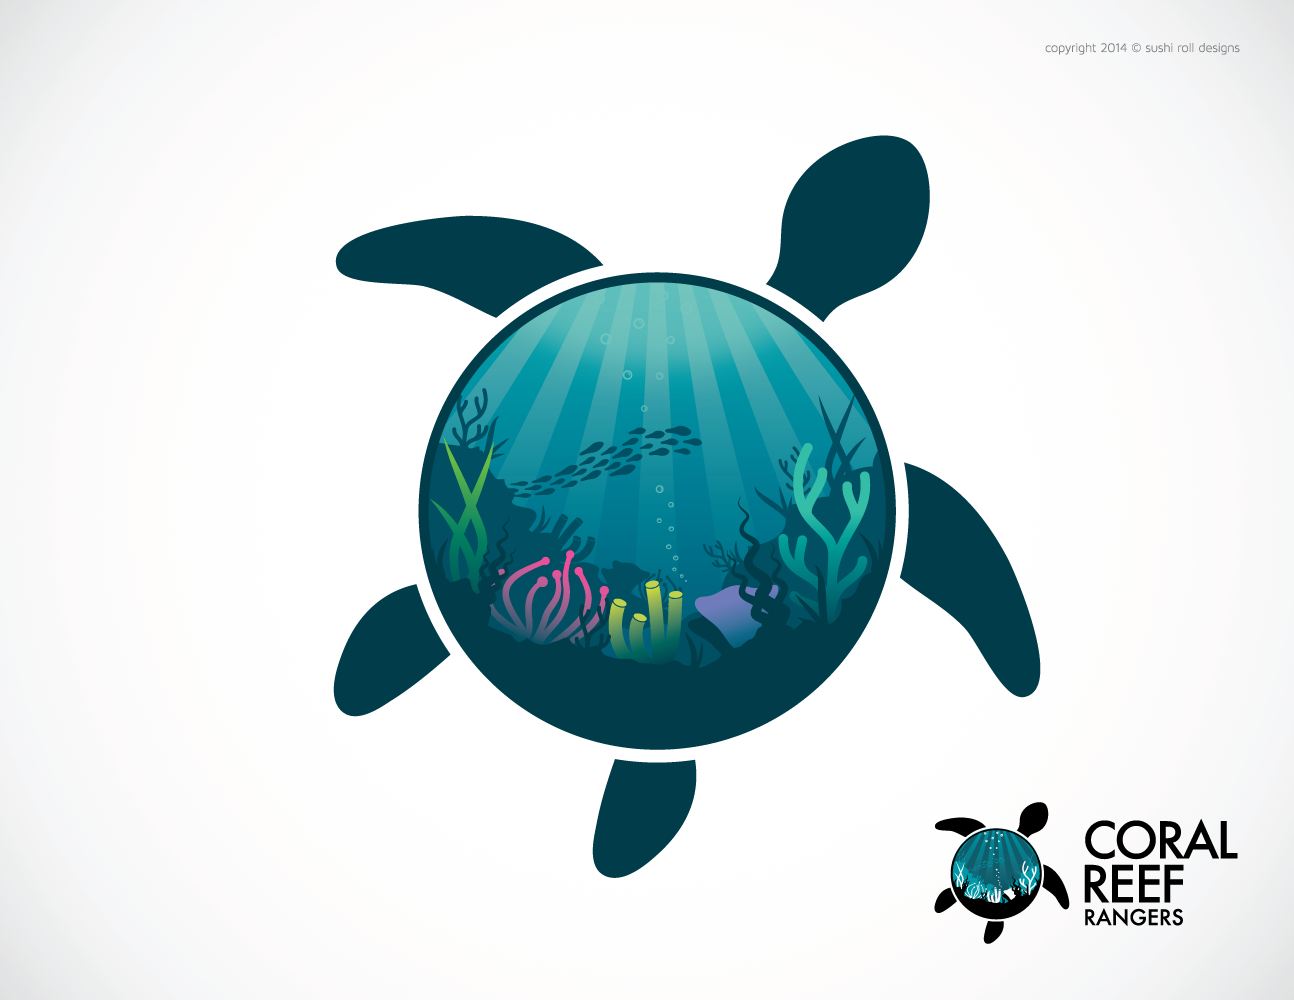 graphic design logo design for coral reef rangers by sushi